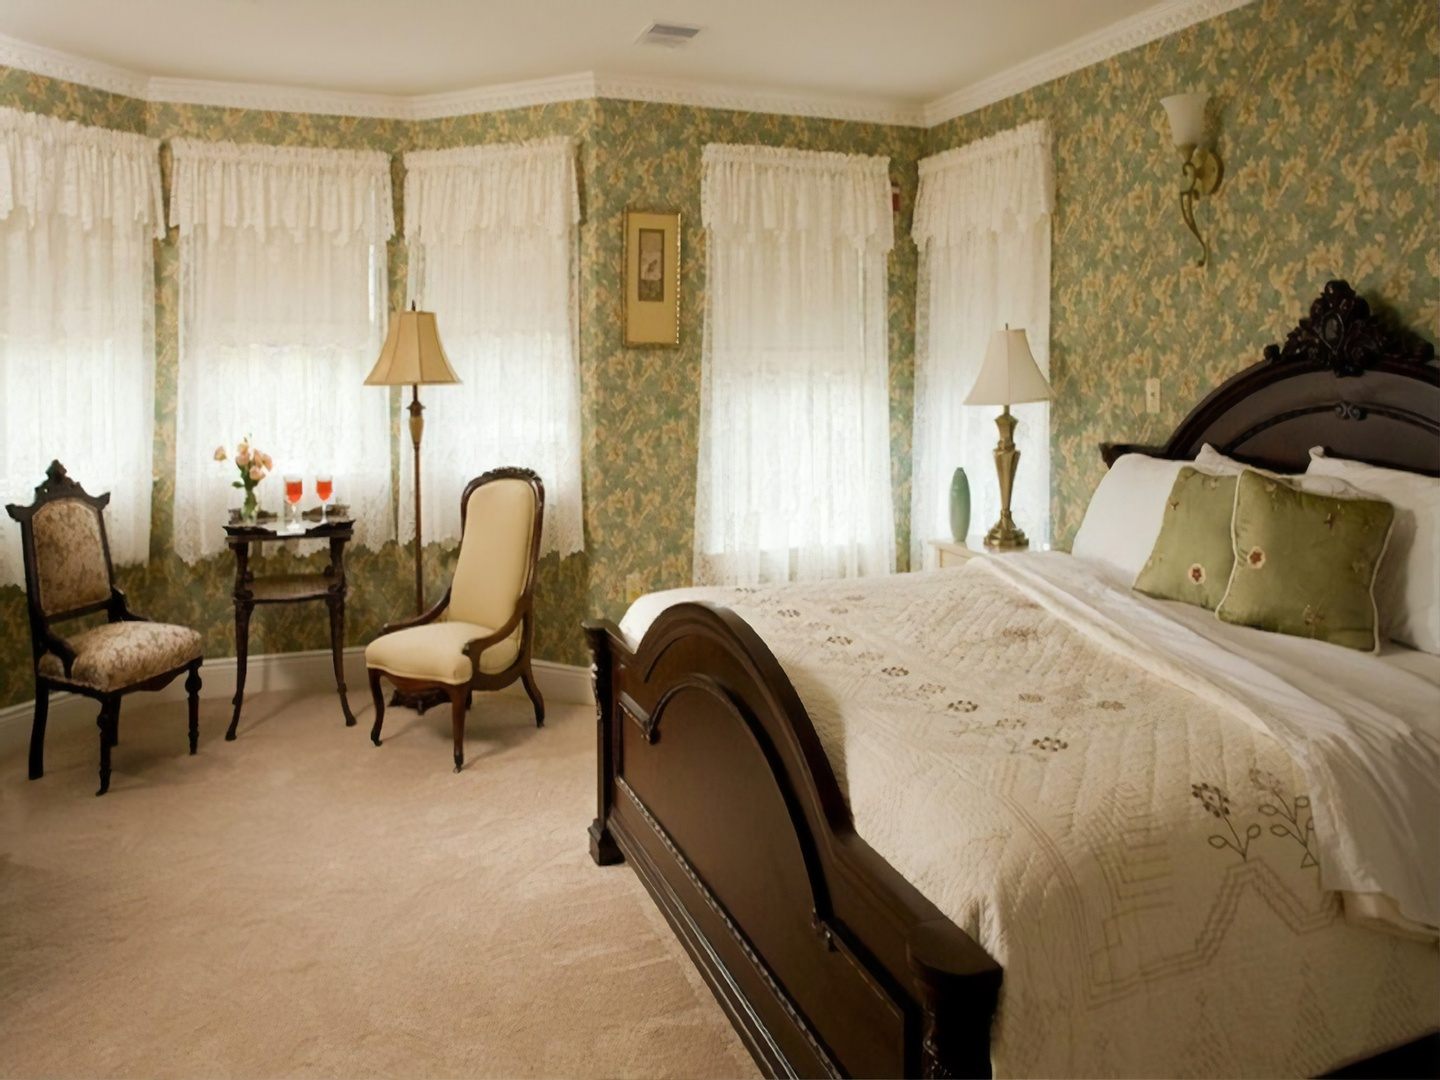 A bedroom with a large bed in a hotel room at Wilbraham Mansion.